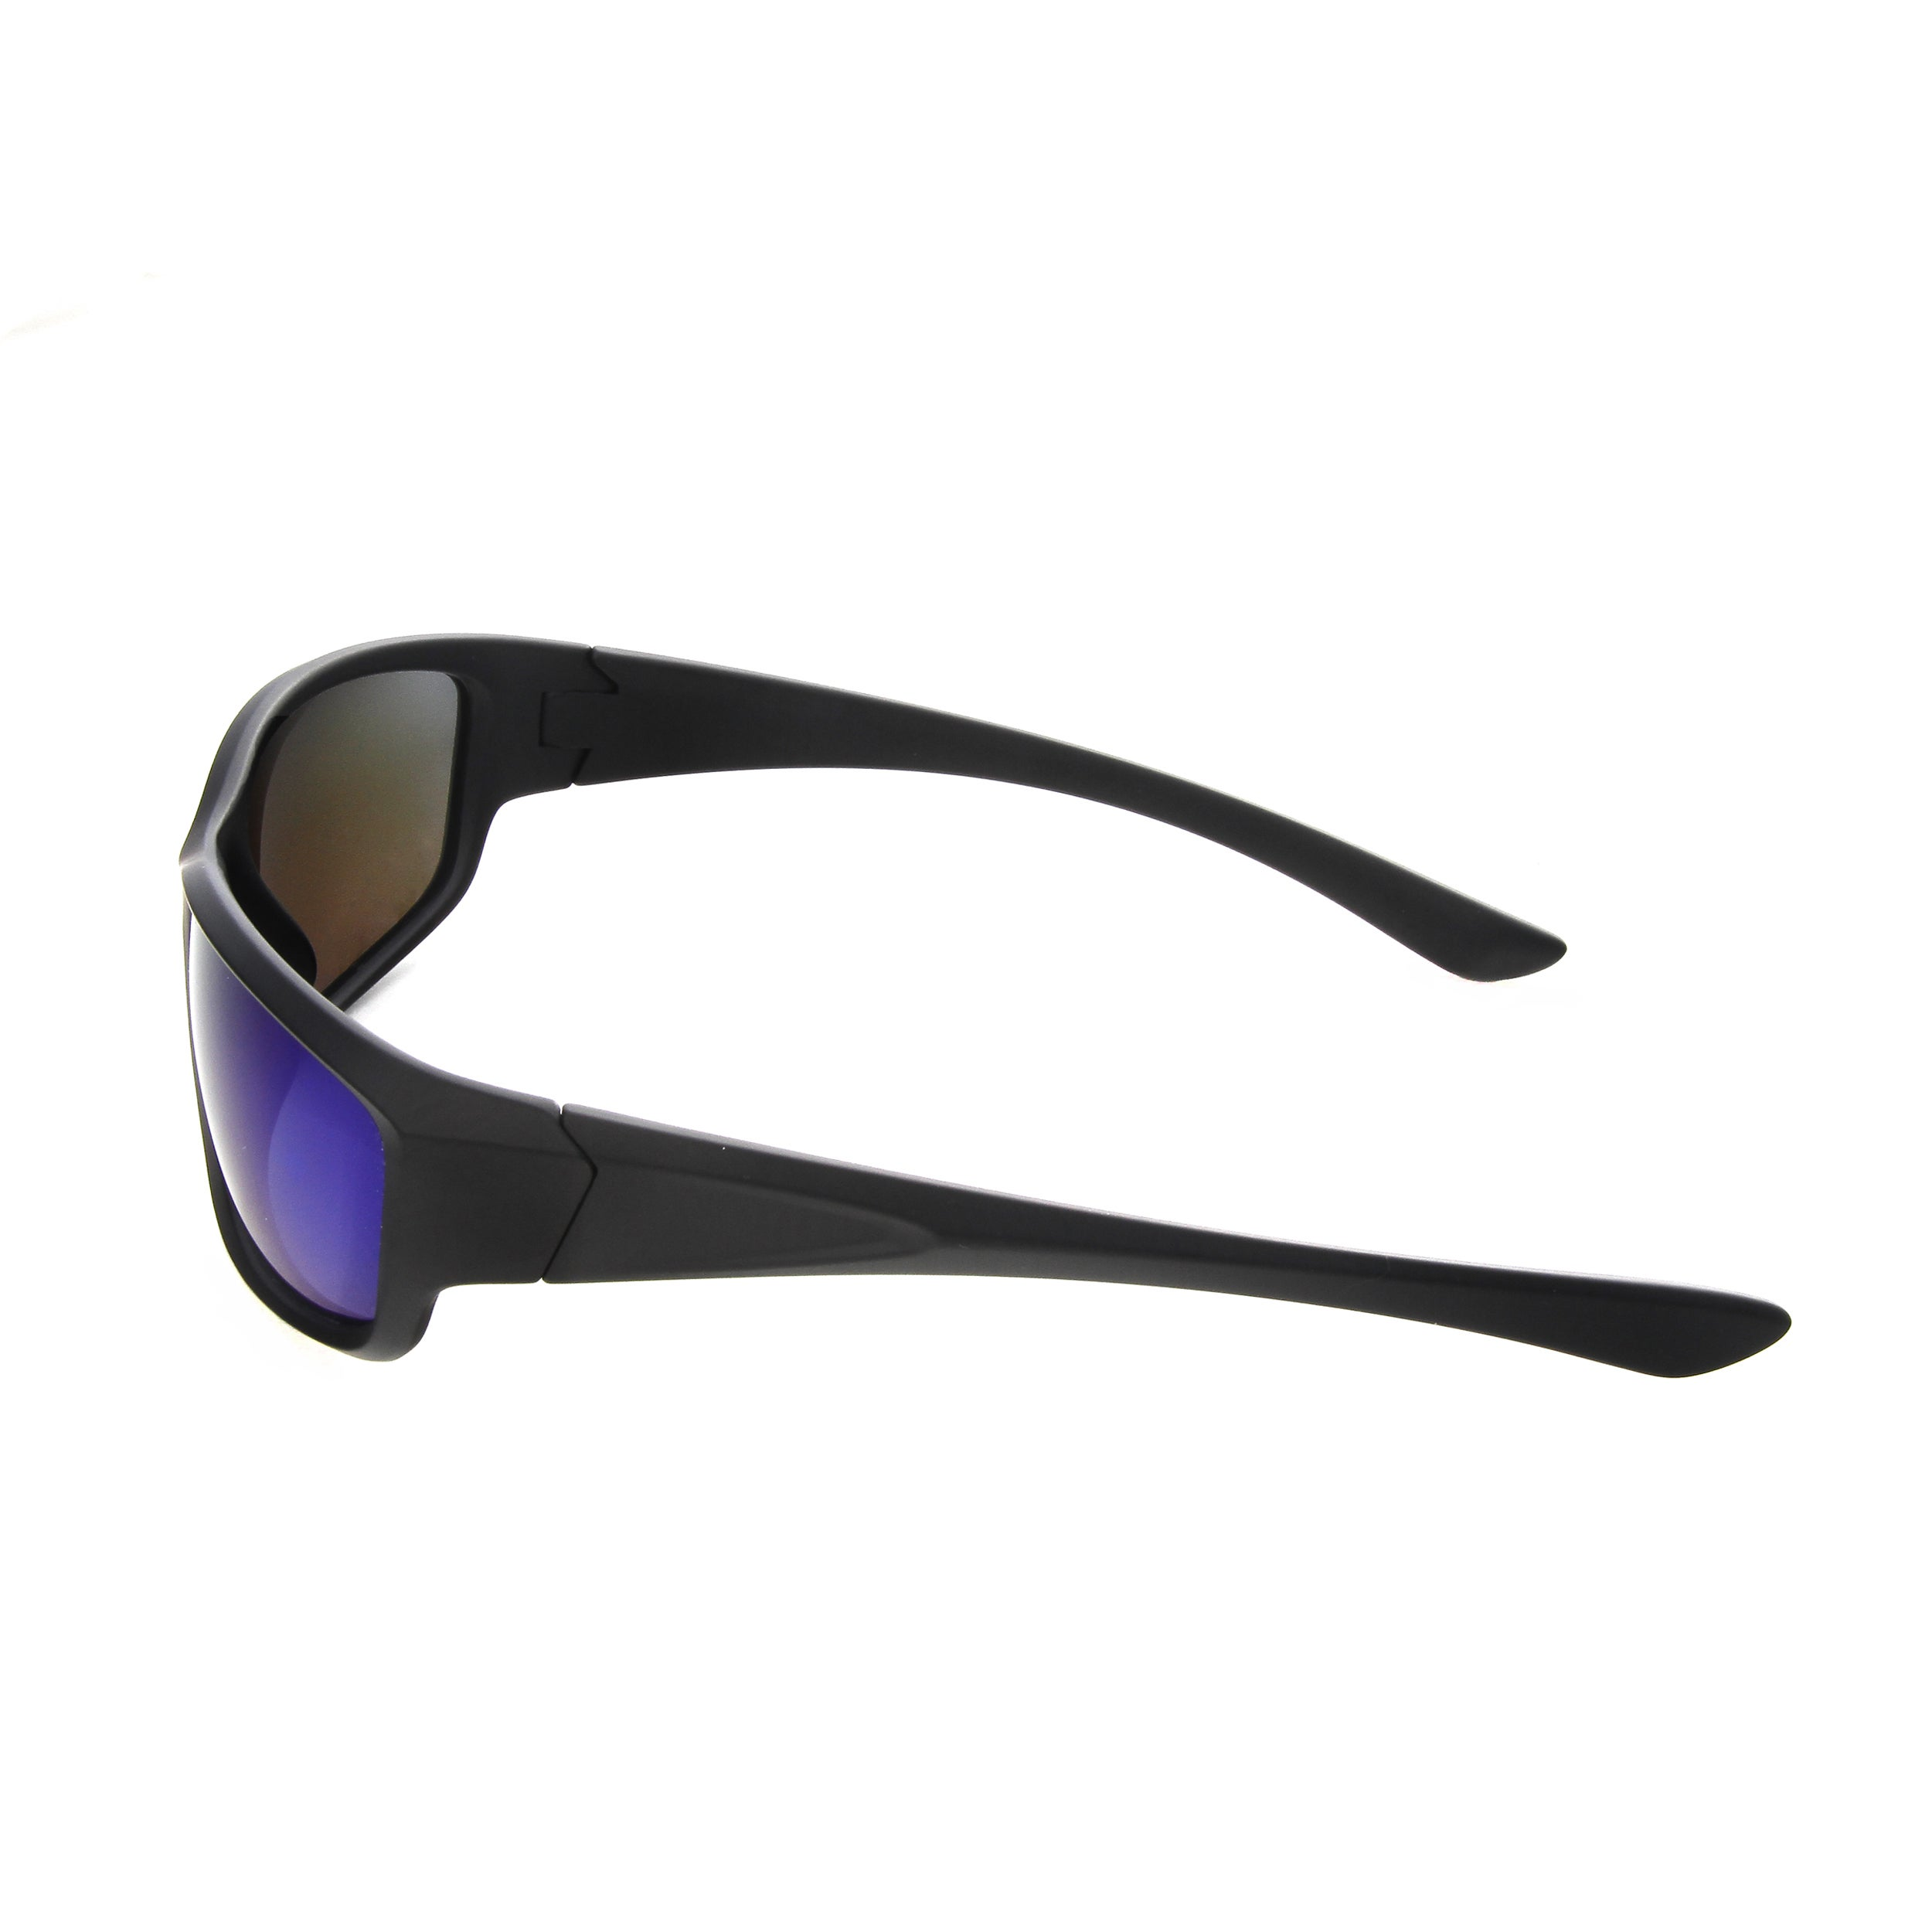 6de8478562 Shop Hot Optix Men s Polarized Sport Wrap Mirrored Lens Sunglasses - Free  Shipping On Orders Over  45 - Overstock - 14819894